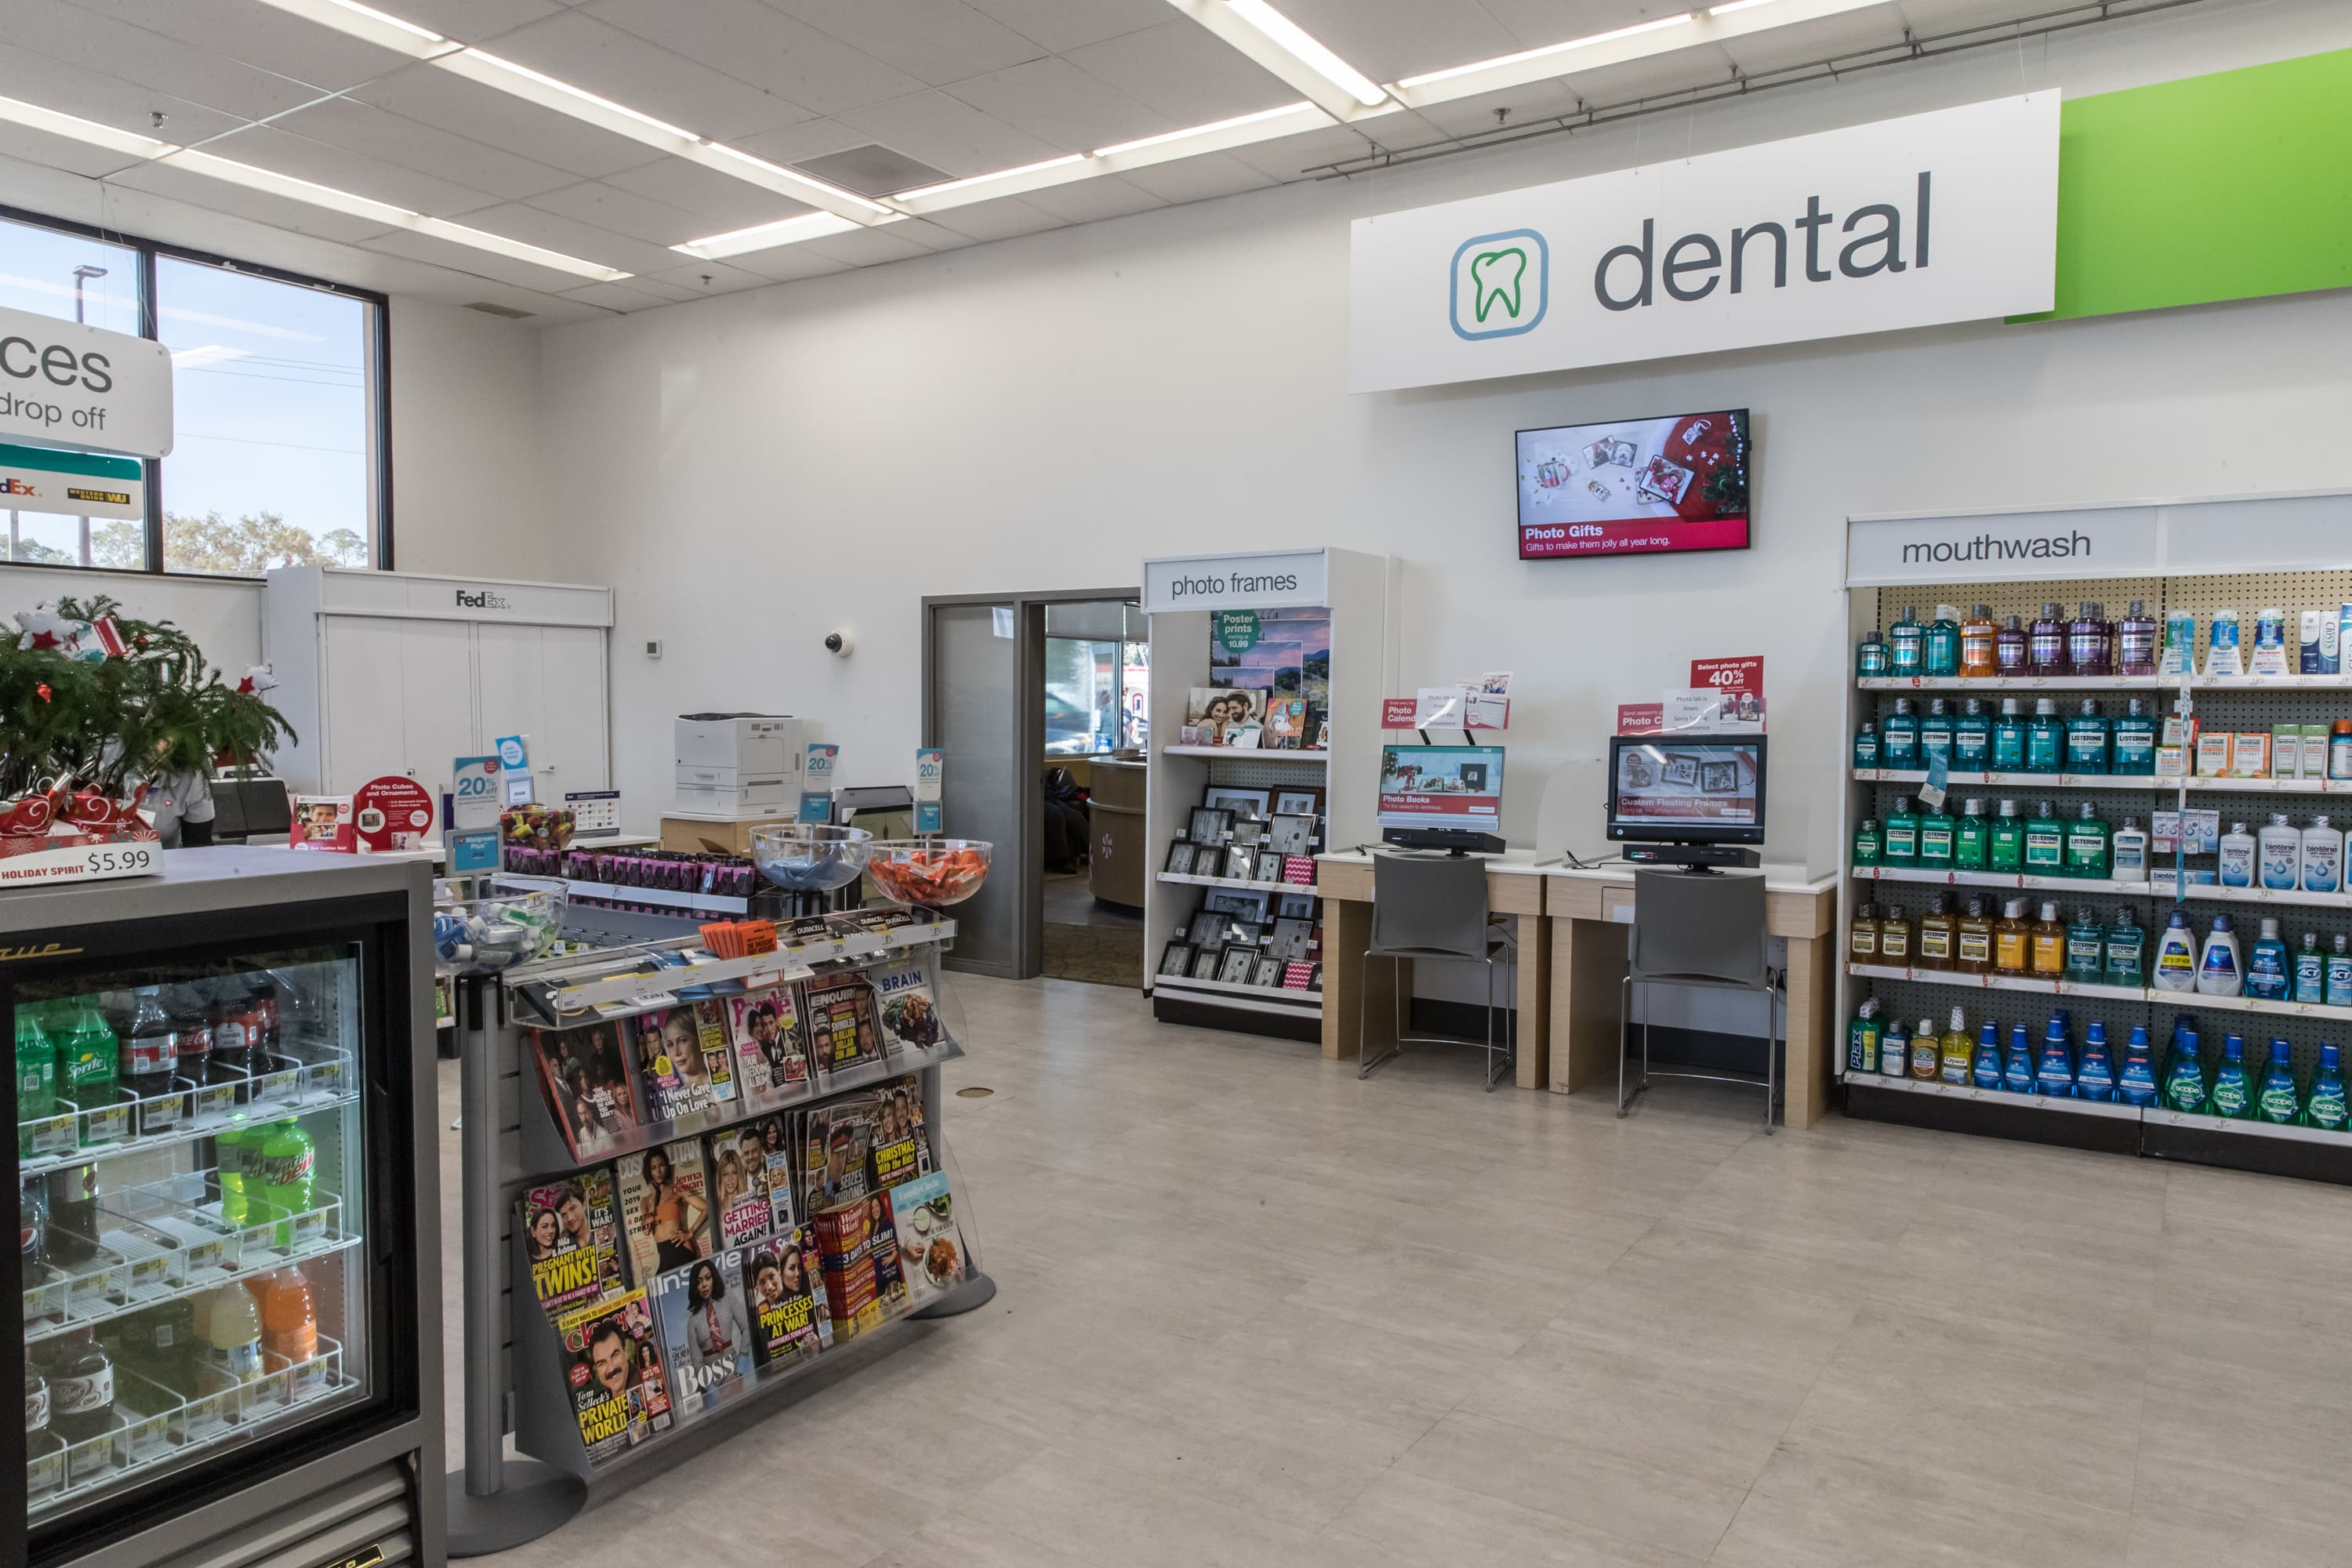 Office Stores Walgreens Cvs Test Teeth Straightening Cleanings In Some Stores